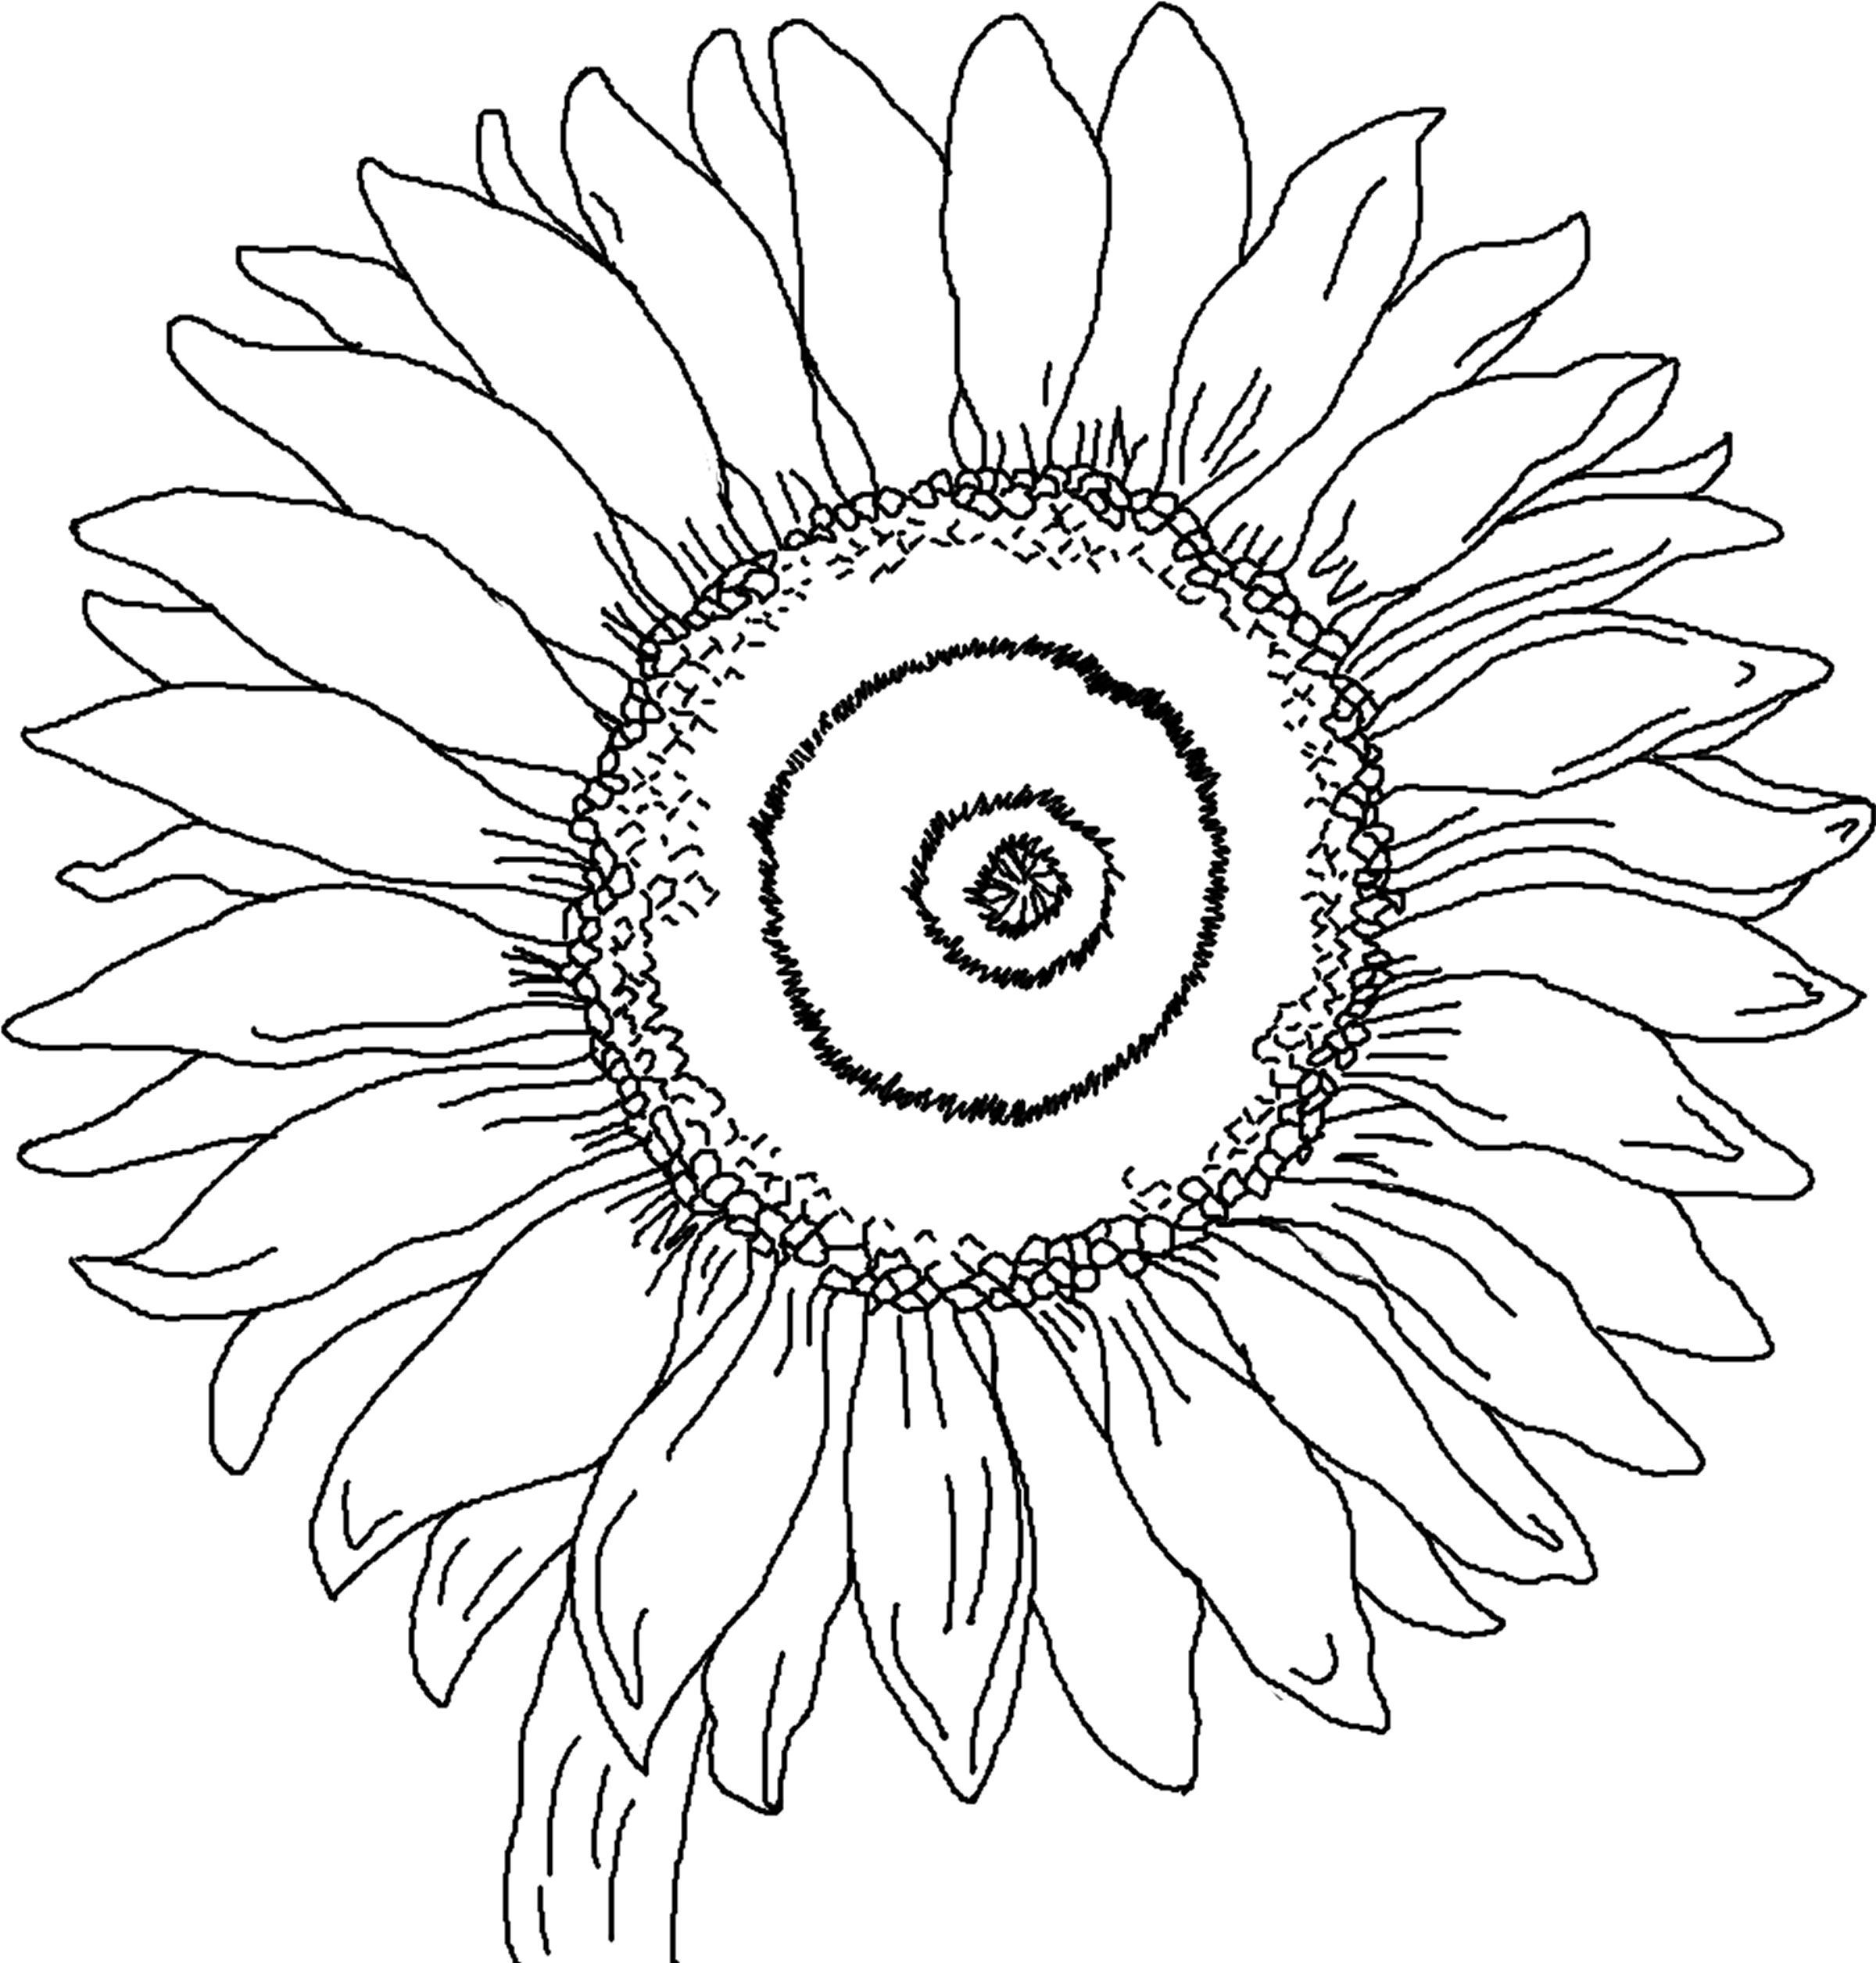 Free Printable Sunflower Coloring Pages For Kids Sunflower Coloring Pages Sunflower Colors Summer Coloring Pages